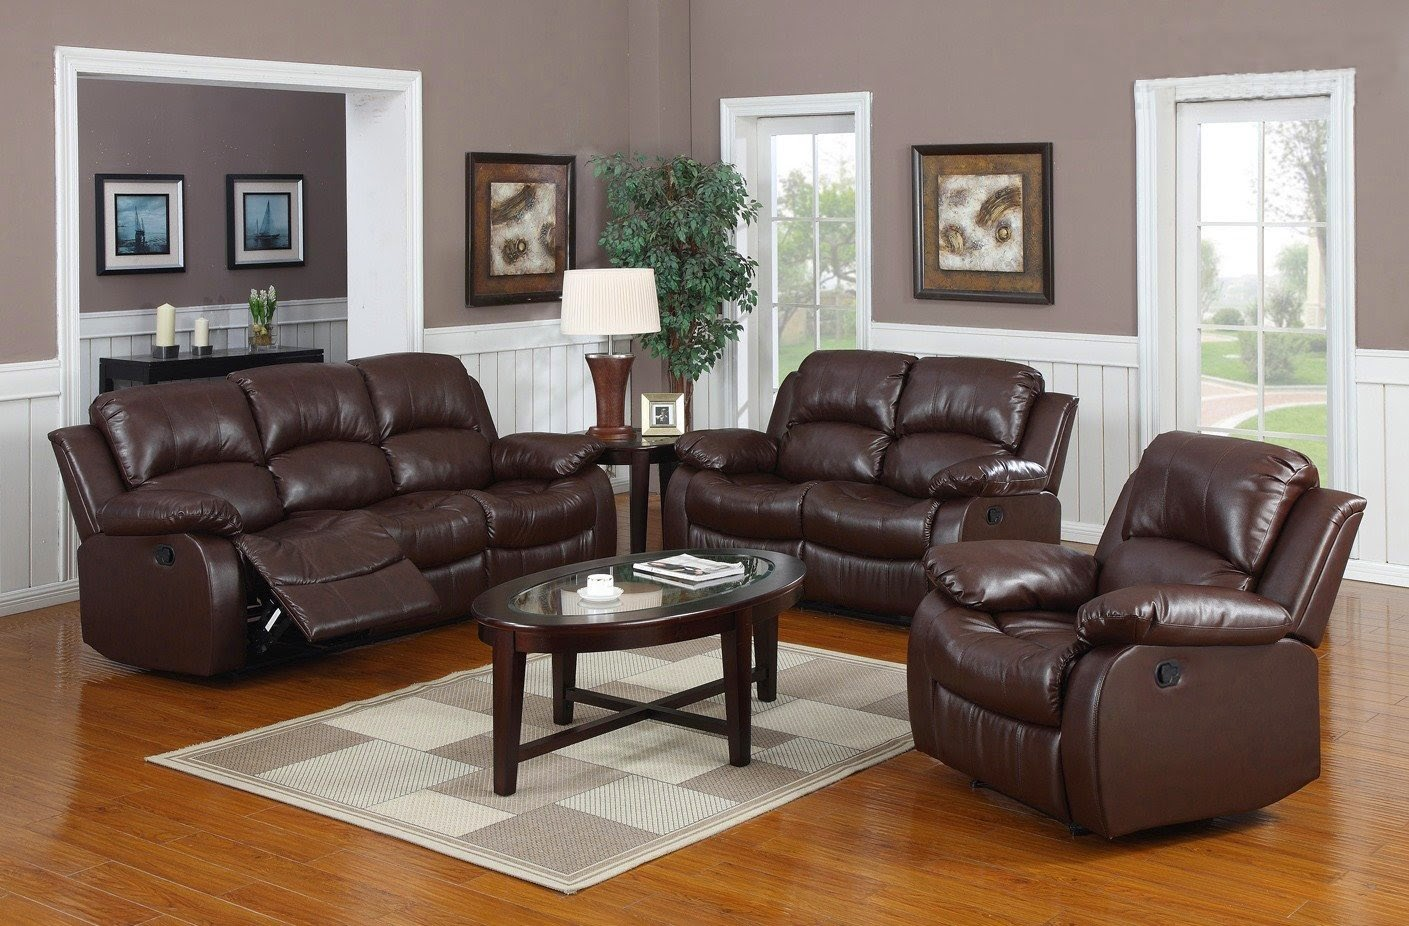 Cheap Reclining Sofas Sale Leather Sofa Costco